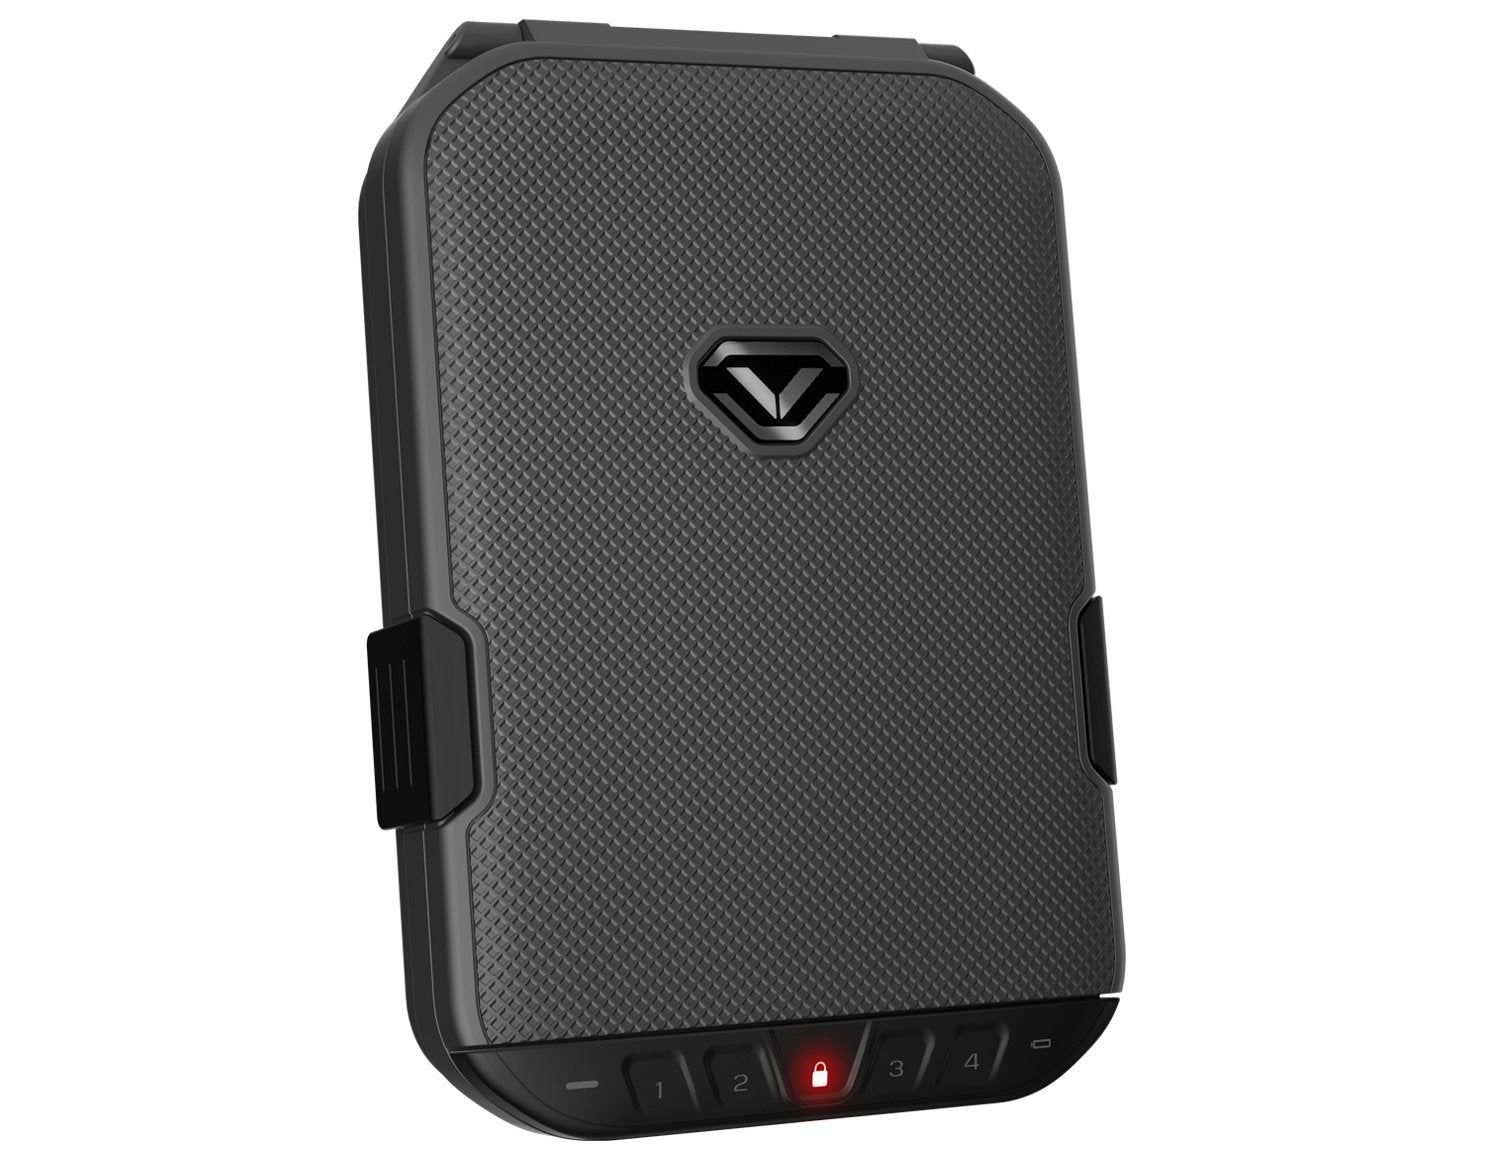 Handgun And Pistol Safes - Vaultek LifePod Rugged Airtight Weather Resistant Safe With Built-in Lock